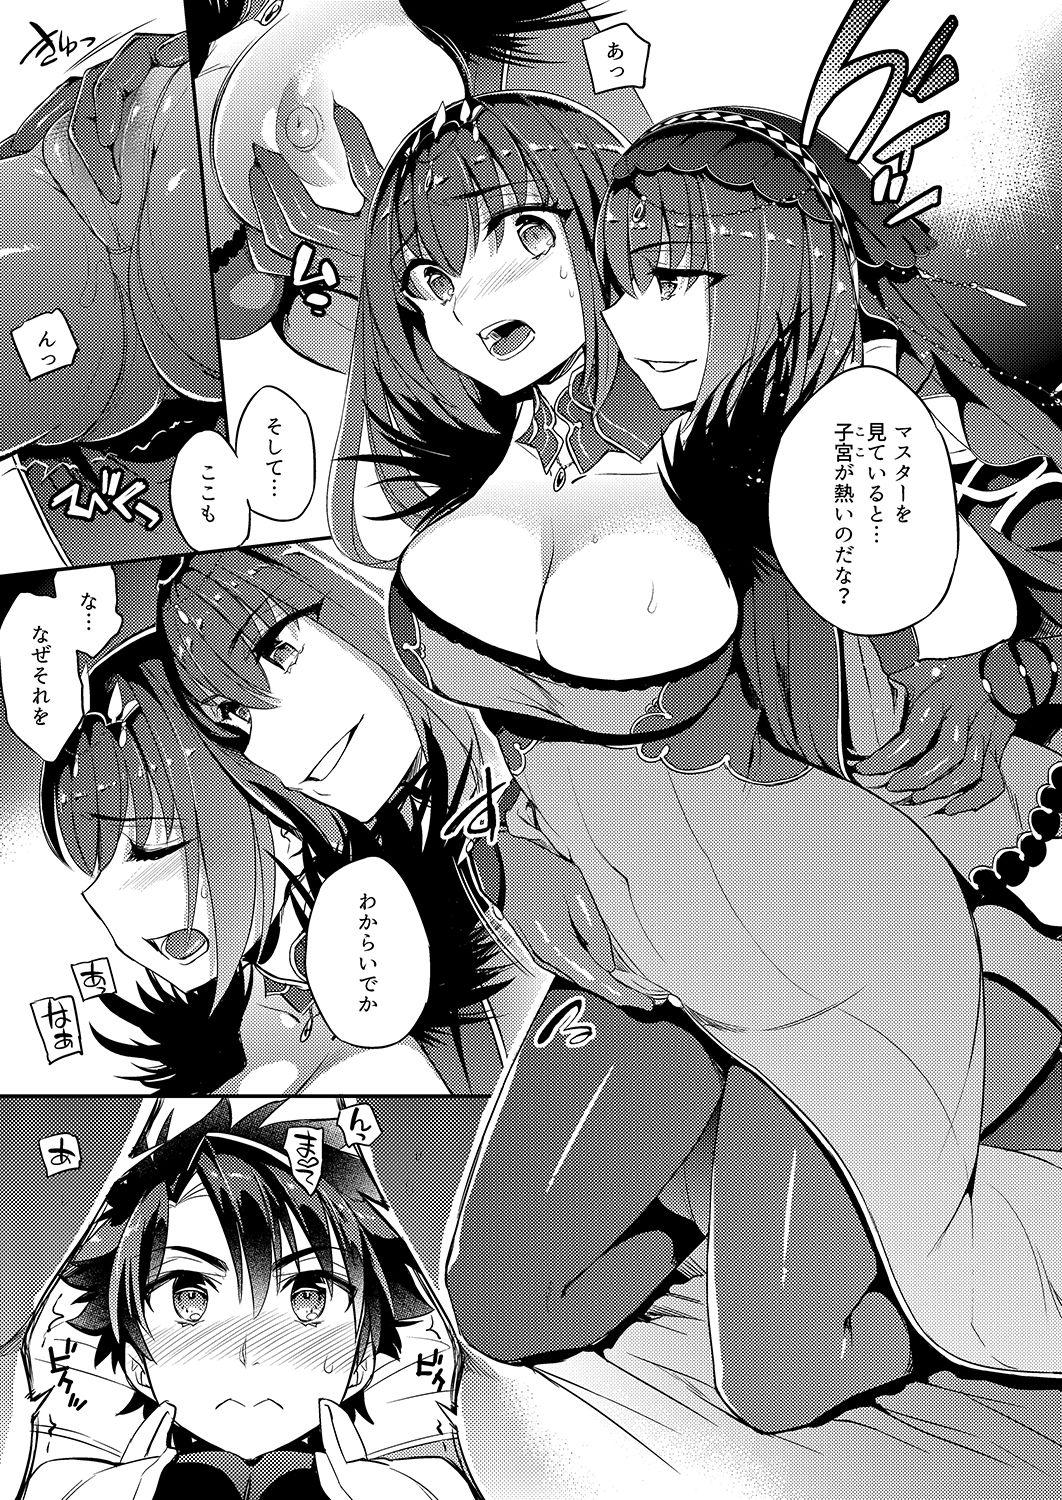 C9-39 W Scathach to 6